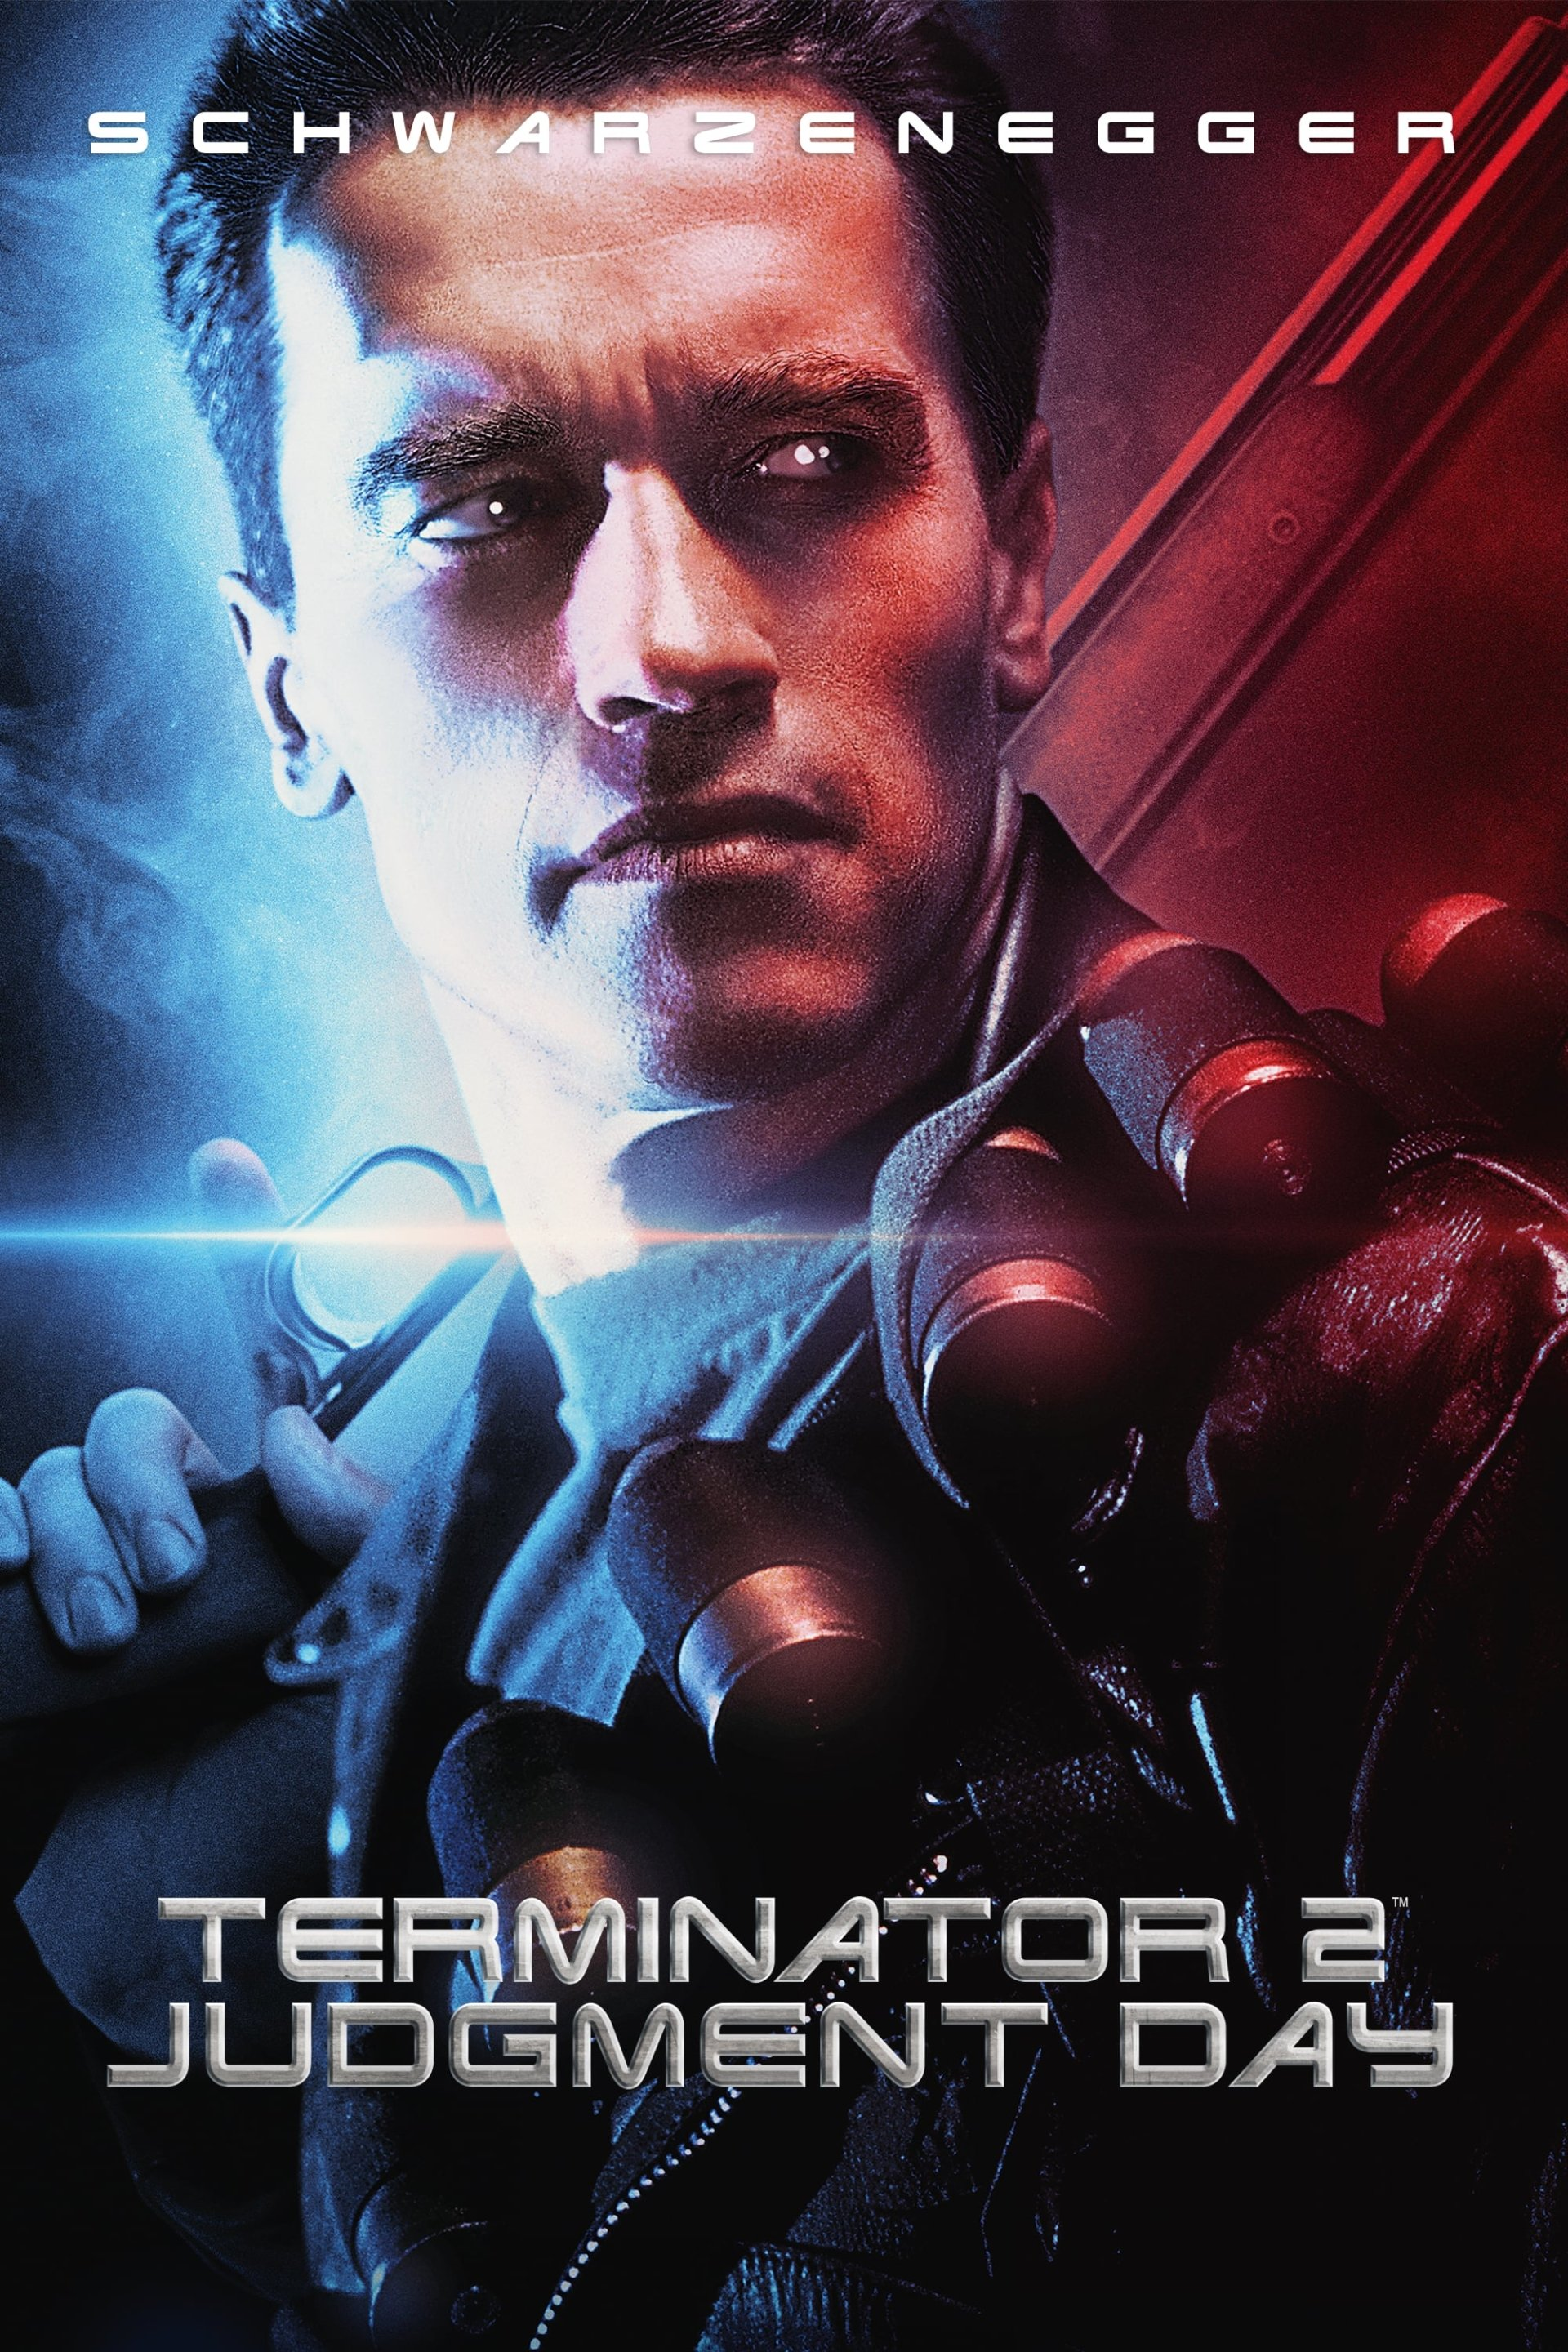 Terminator 2: Judgment Day Movie Poster - ID: 362612 ...